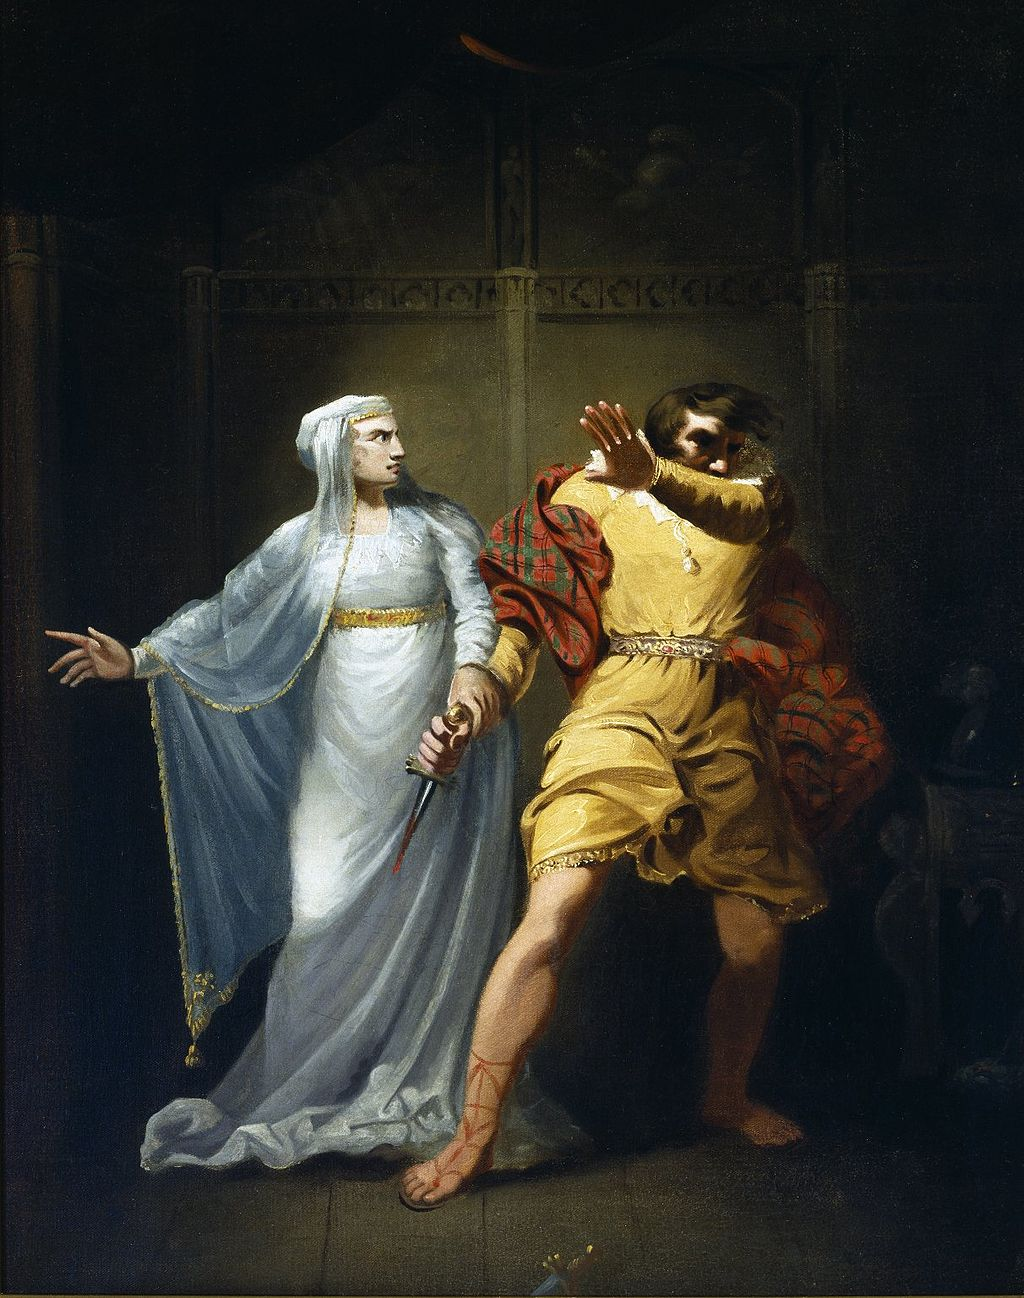 the role of the witches and lady macbeth in the death of duncan in the play macbeth by william shake